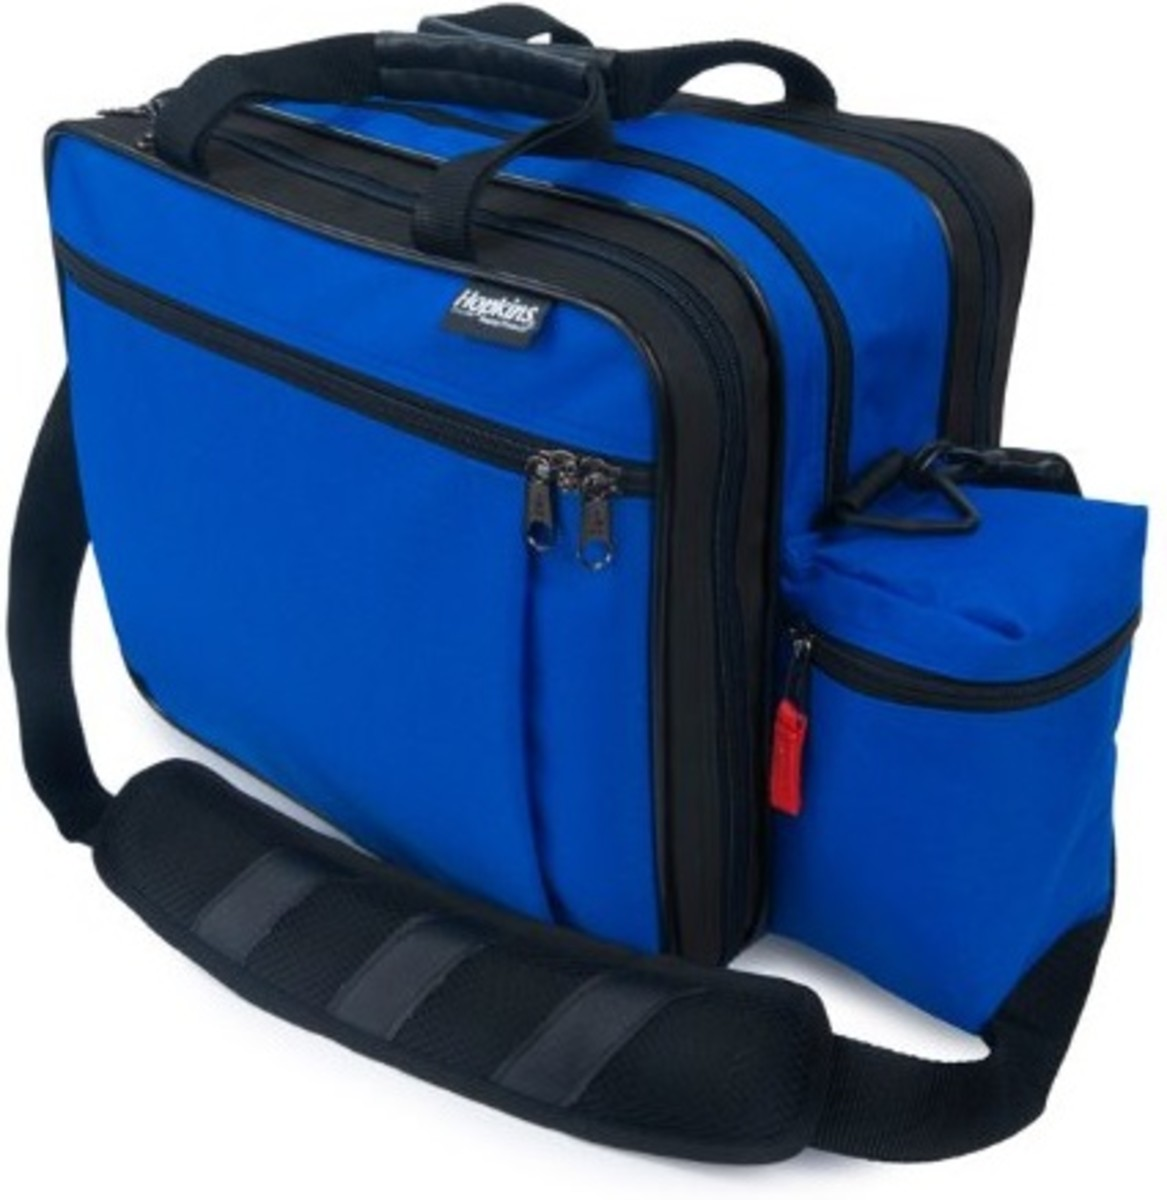 Find the Right Medical Kit Bag: A Review of 17 Medical Bags on Amazon